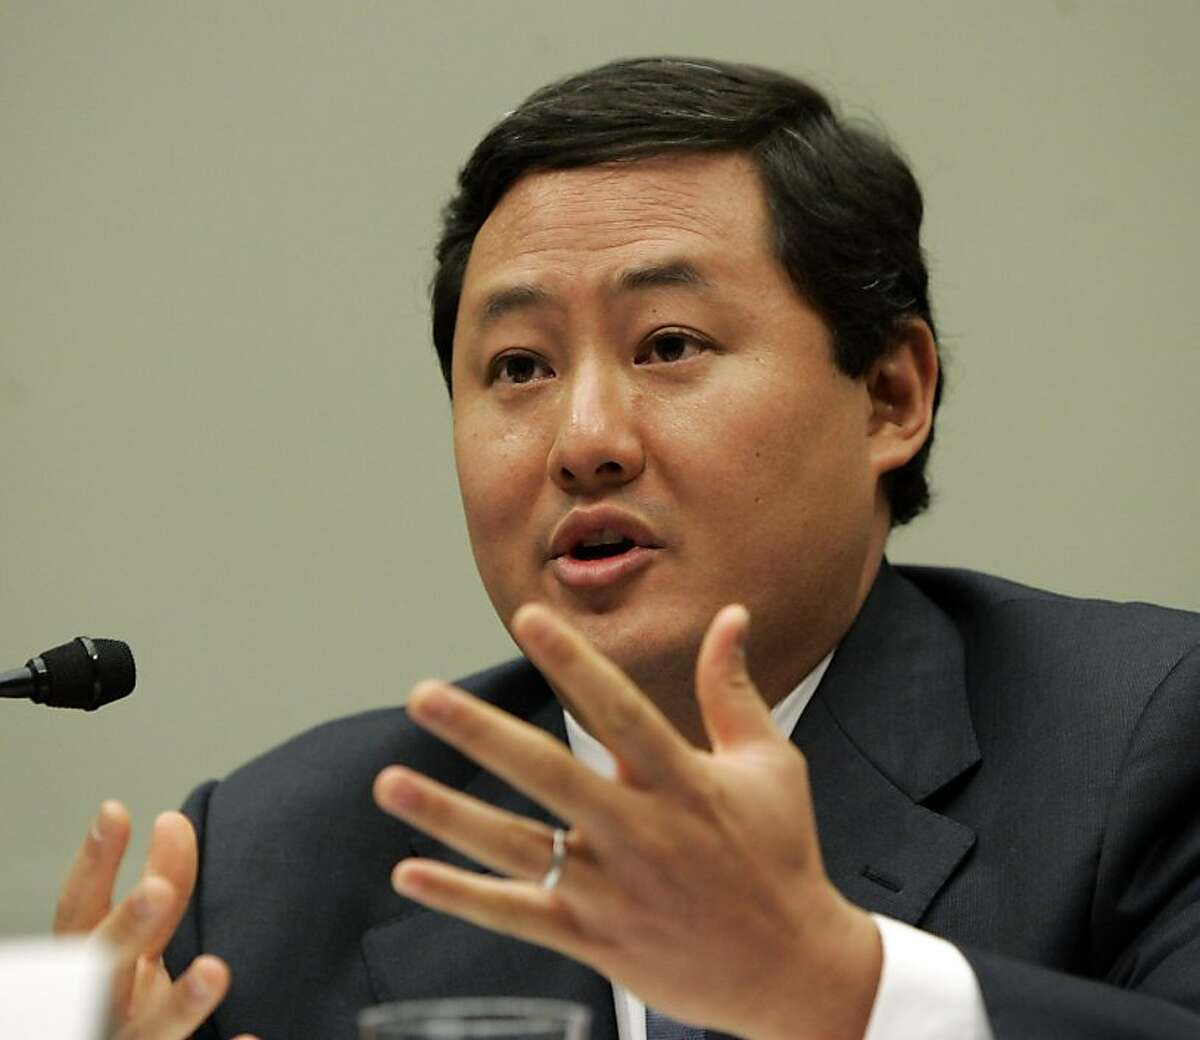 FILE - In this Thursday, June 26, 2008 photo, John Yoo, a law professor at the University of California at Berkeley, testifies on Capitol Hill in Washington. Former Justice Department lawyers Jay Bybee and John Yoo showed